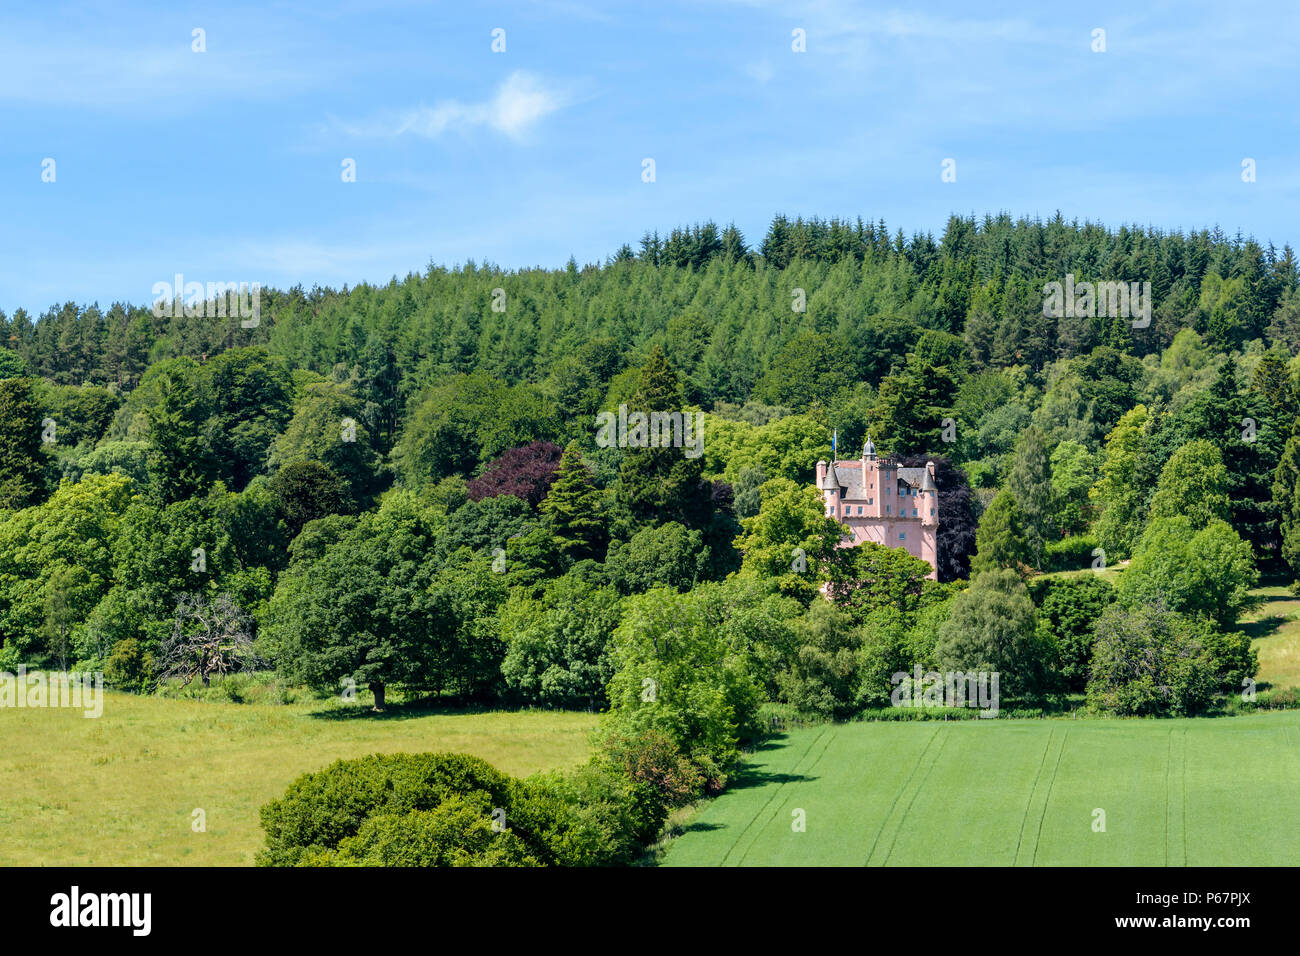 CRAIGIEVAR CASTLE ABERDEENSHIRE SCOTLAND PINK TOWER SURROUNDED BY FIELDS TREES AND LEAVES IN SUMMER - Stock Image